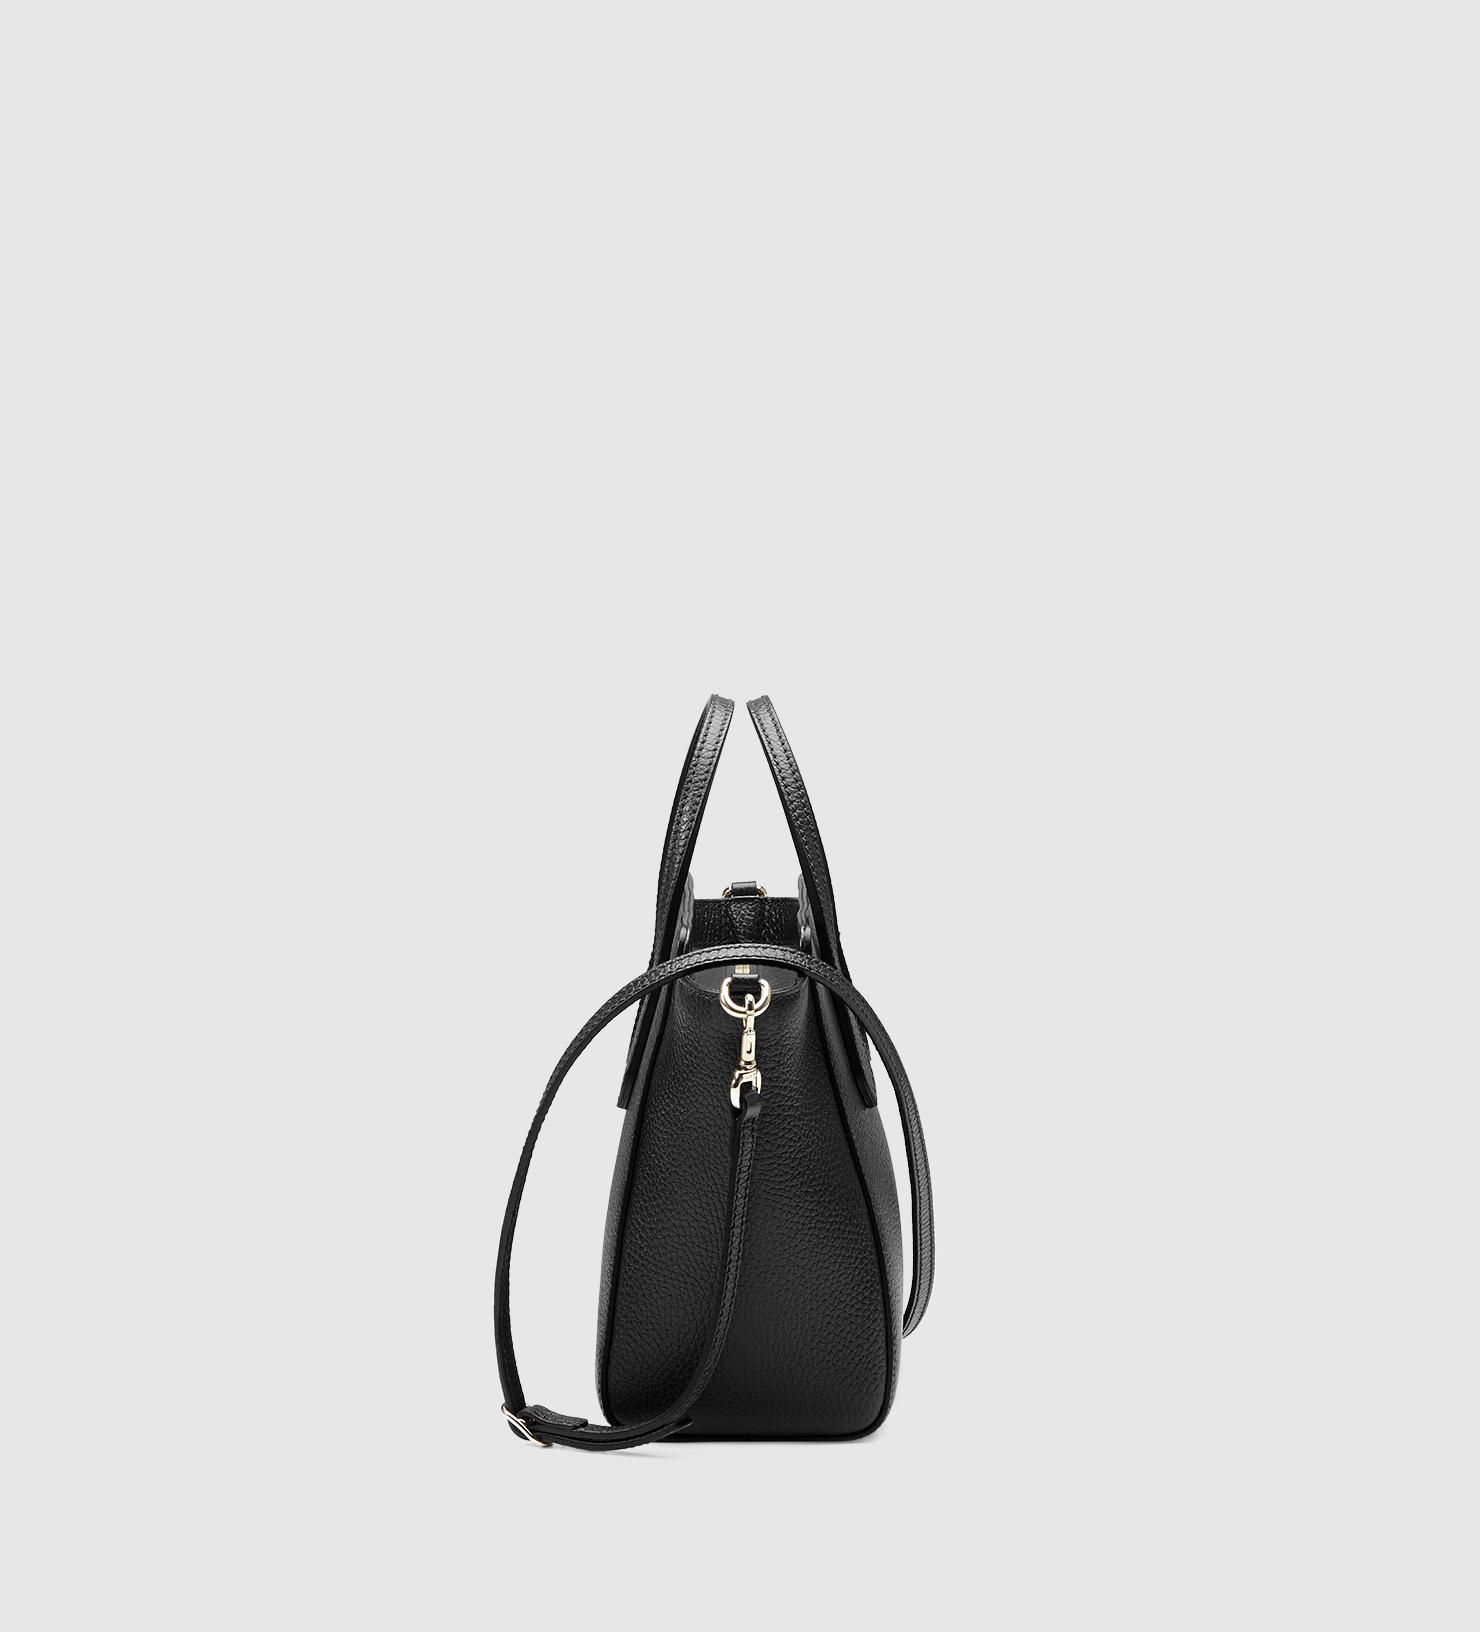 ccad40bf02ab61 Gucci Swing Mini Leather Top Handle Bag in Blue - Lyst